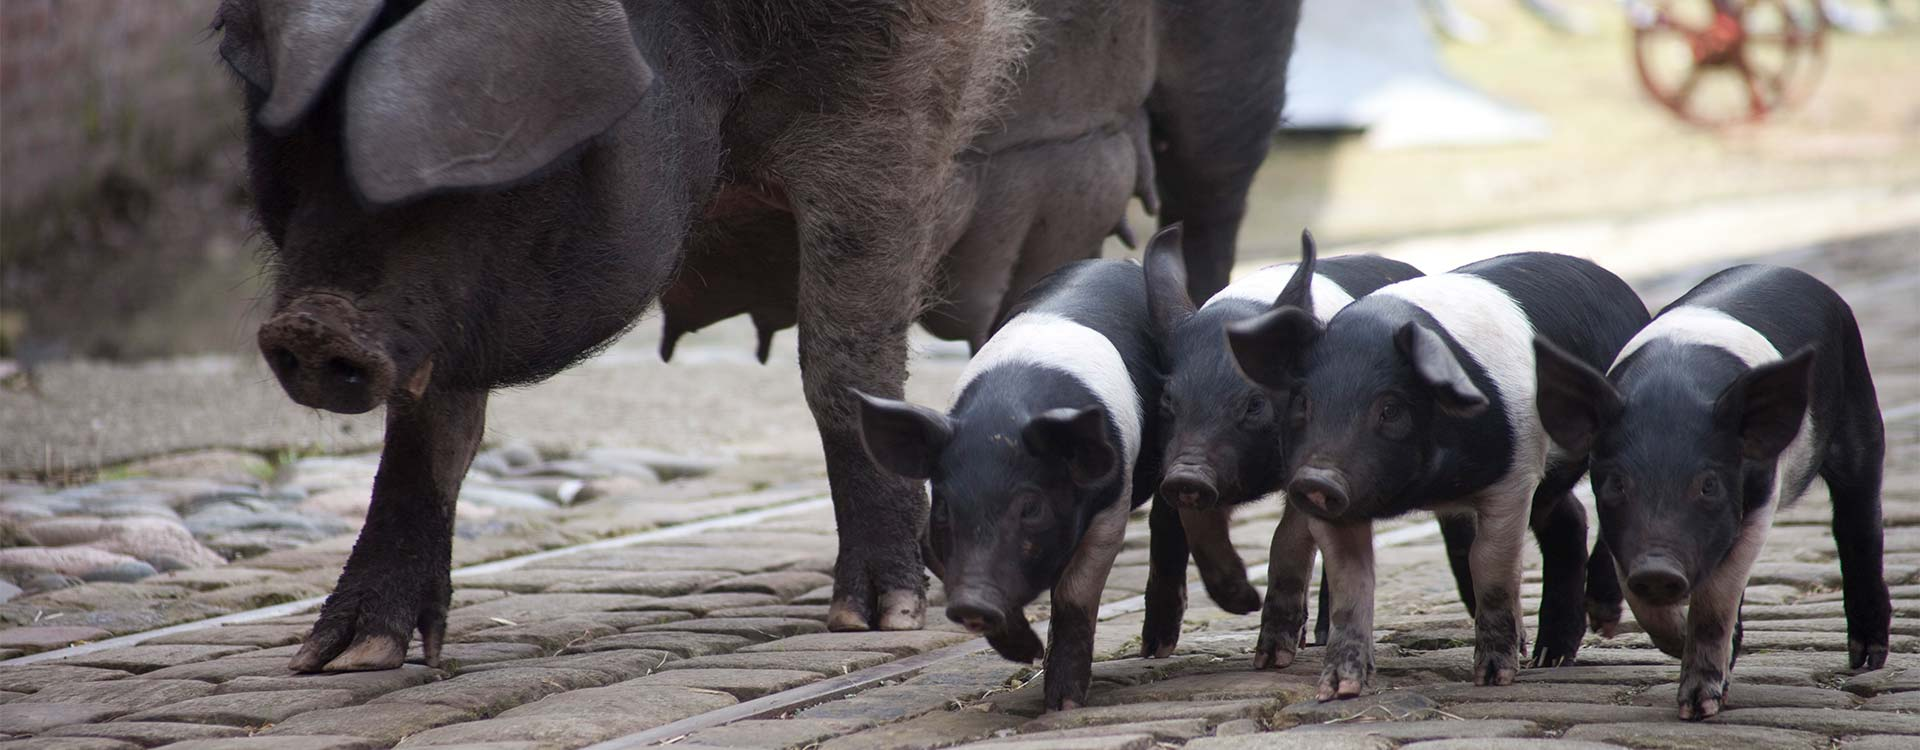 Piglets at the Tatton Park Farm